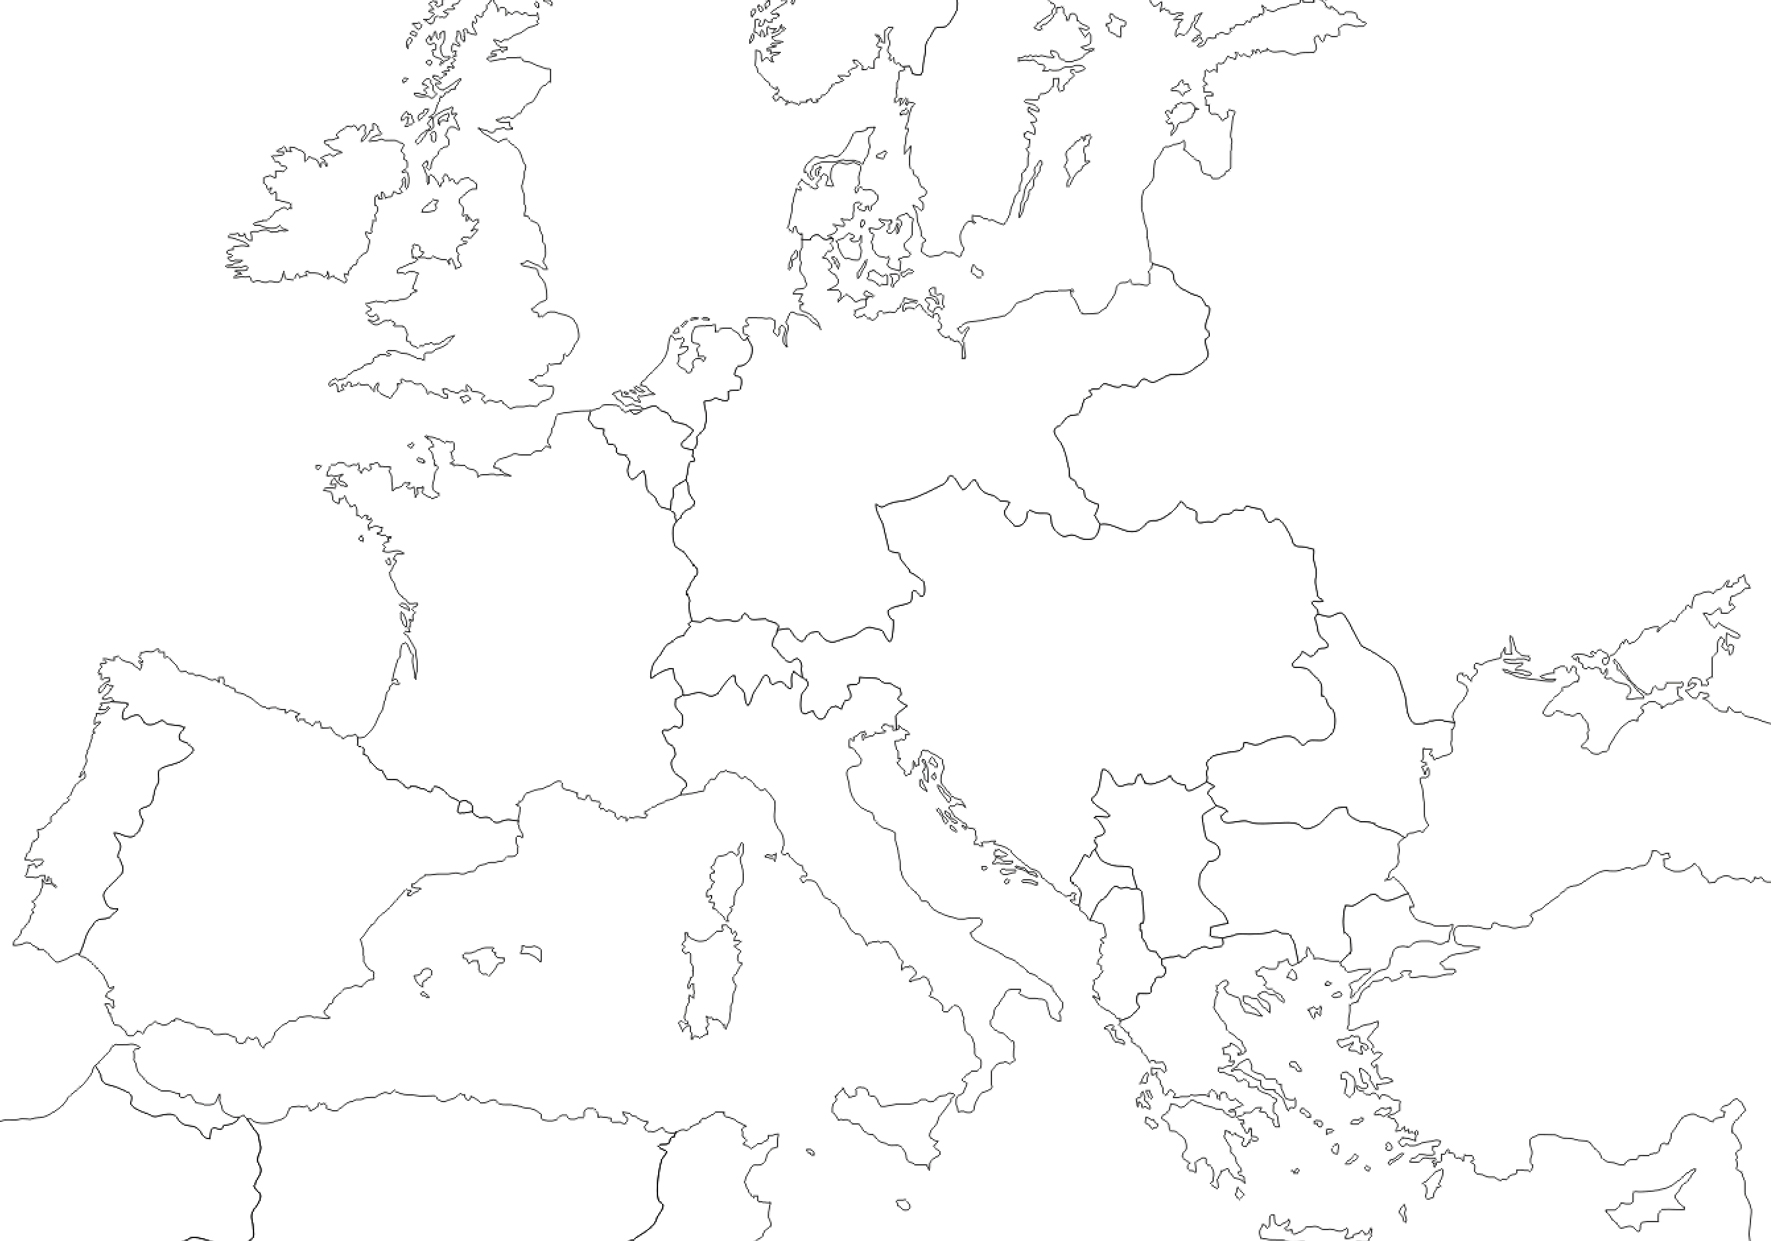 1914 - Outline map of Europe